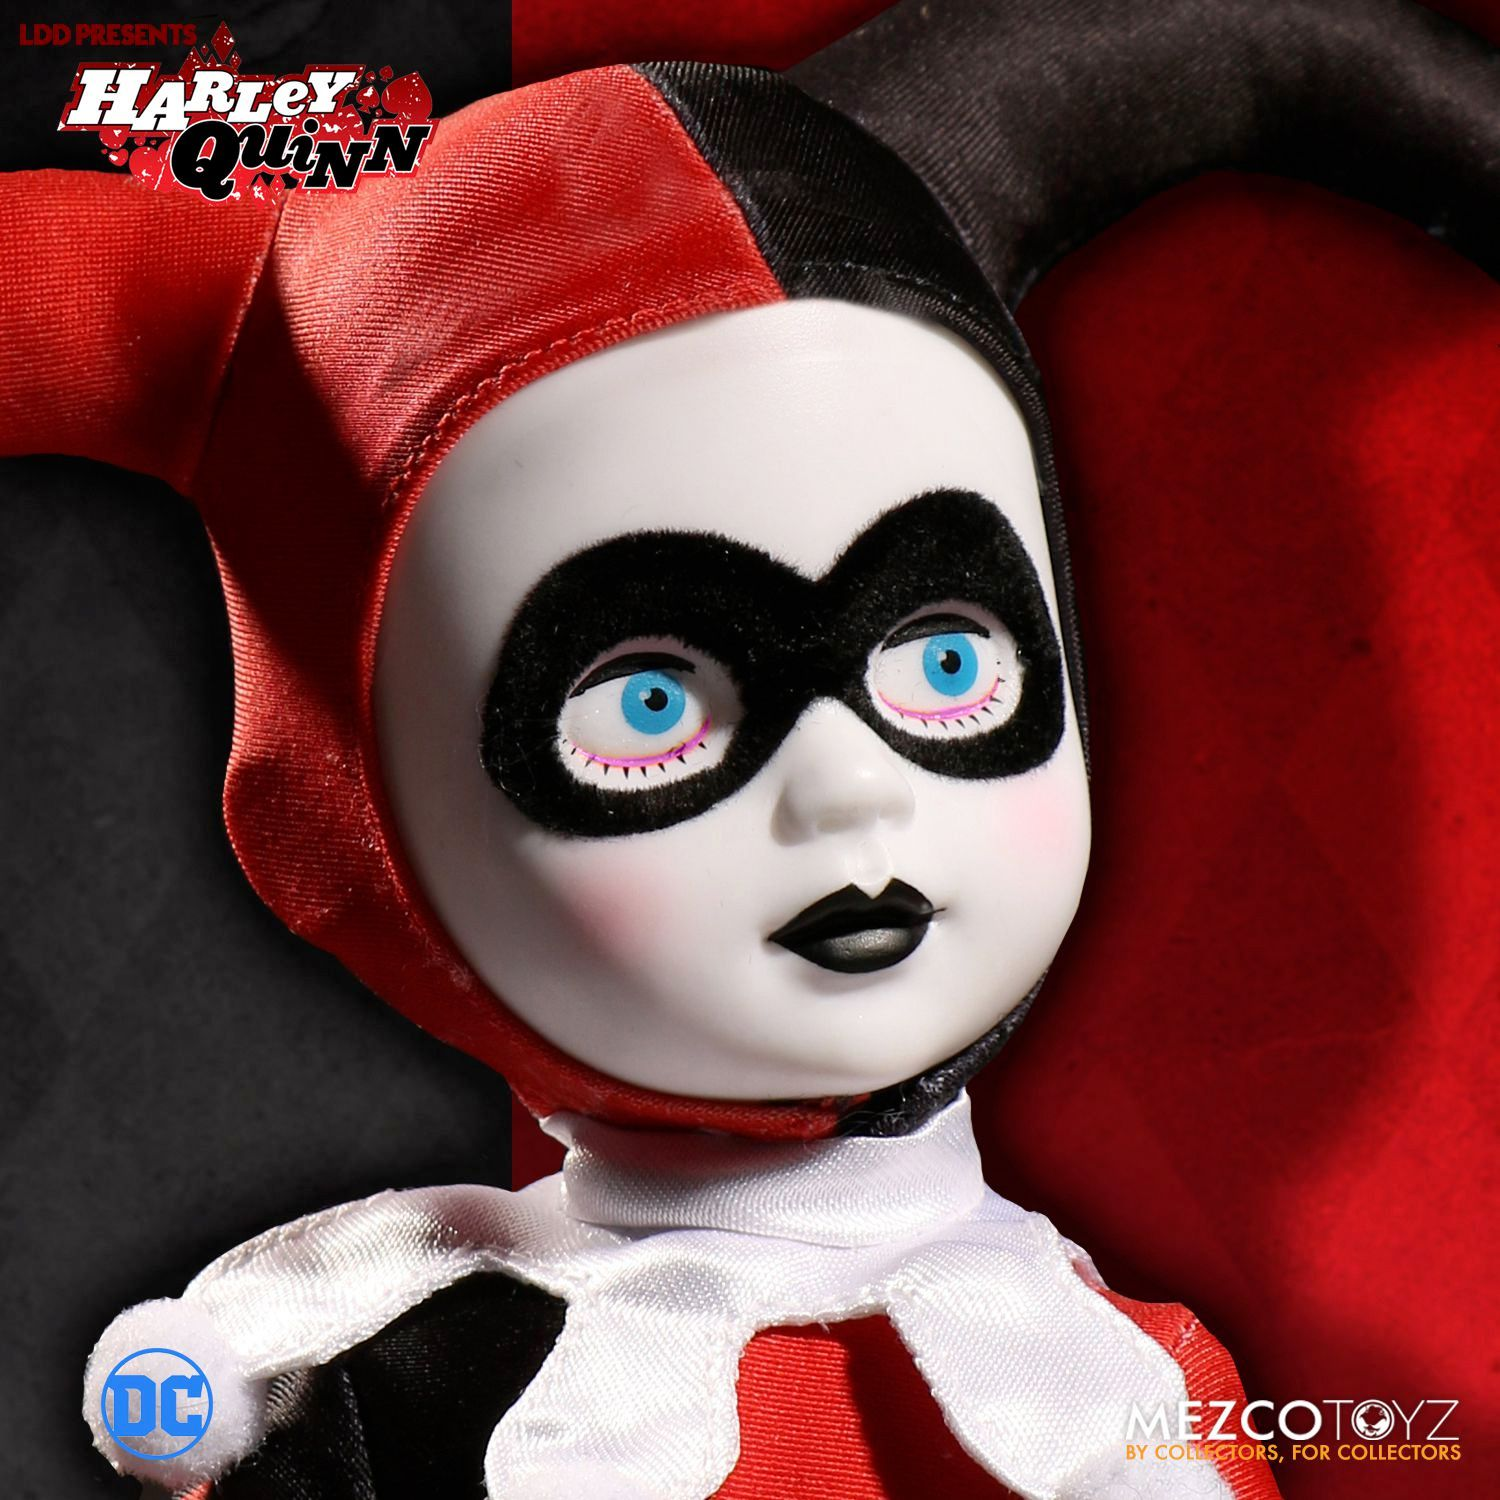 Boneca-Living-Dead-Dolls-Presents-Harley-Quinn-02